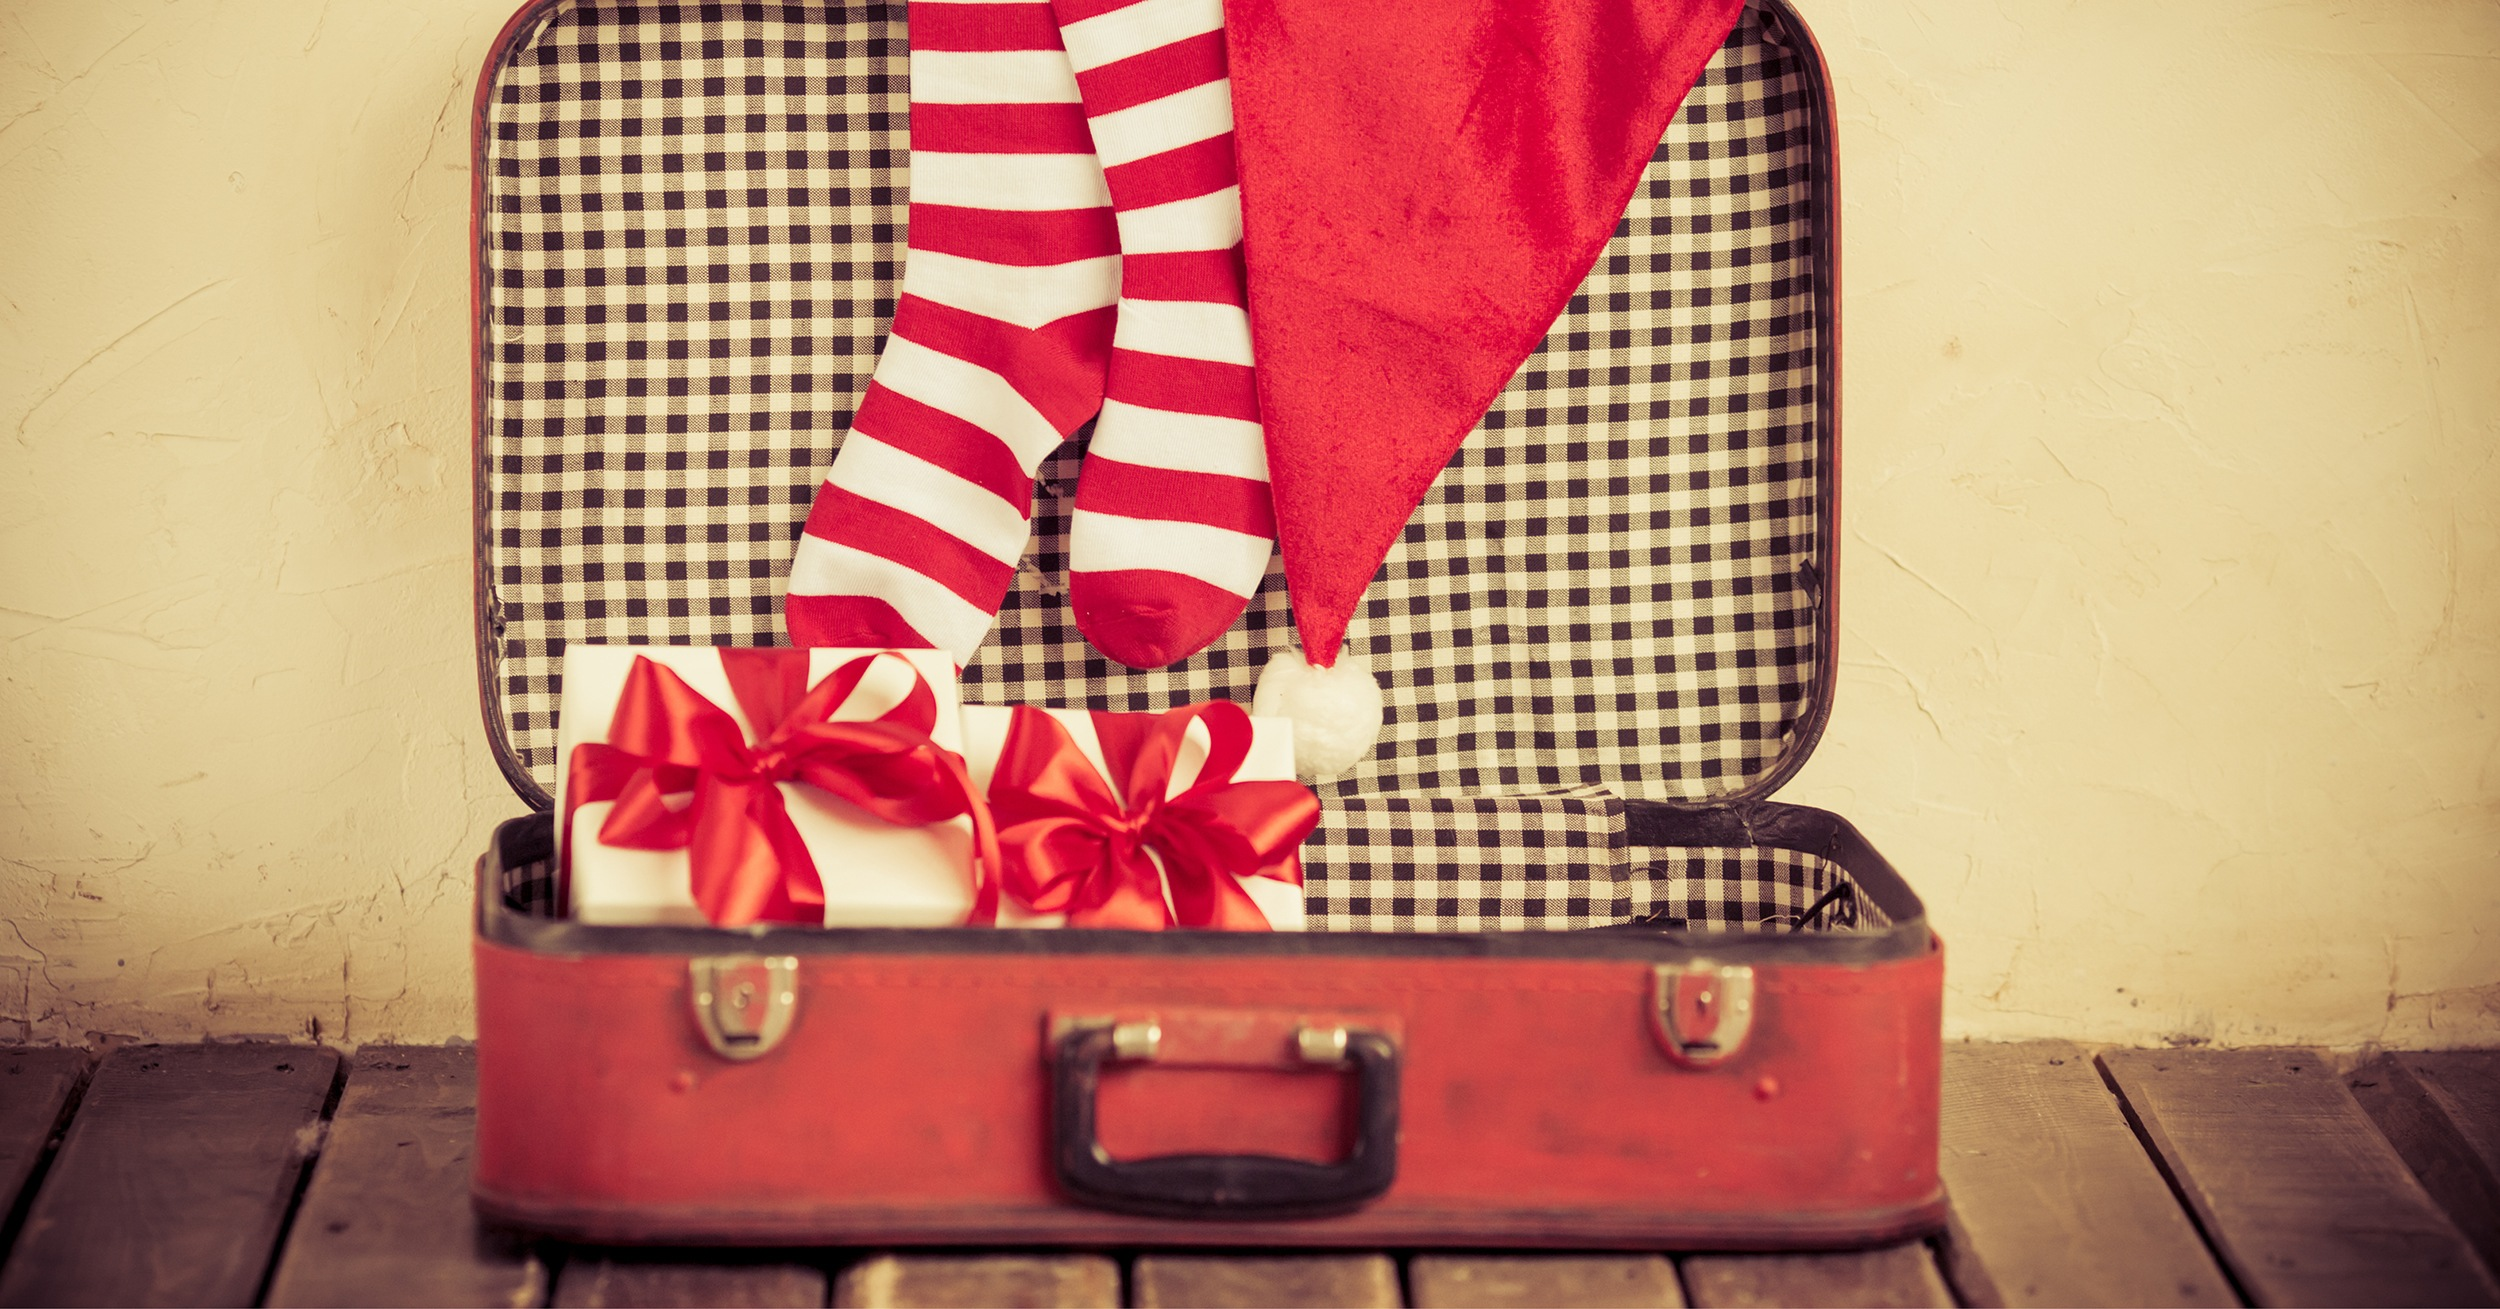 Travelling Light at Christmas